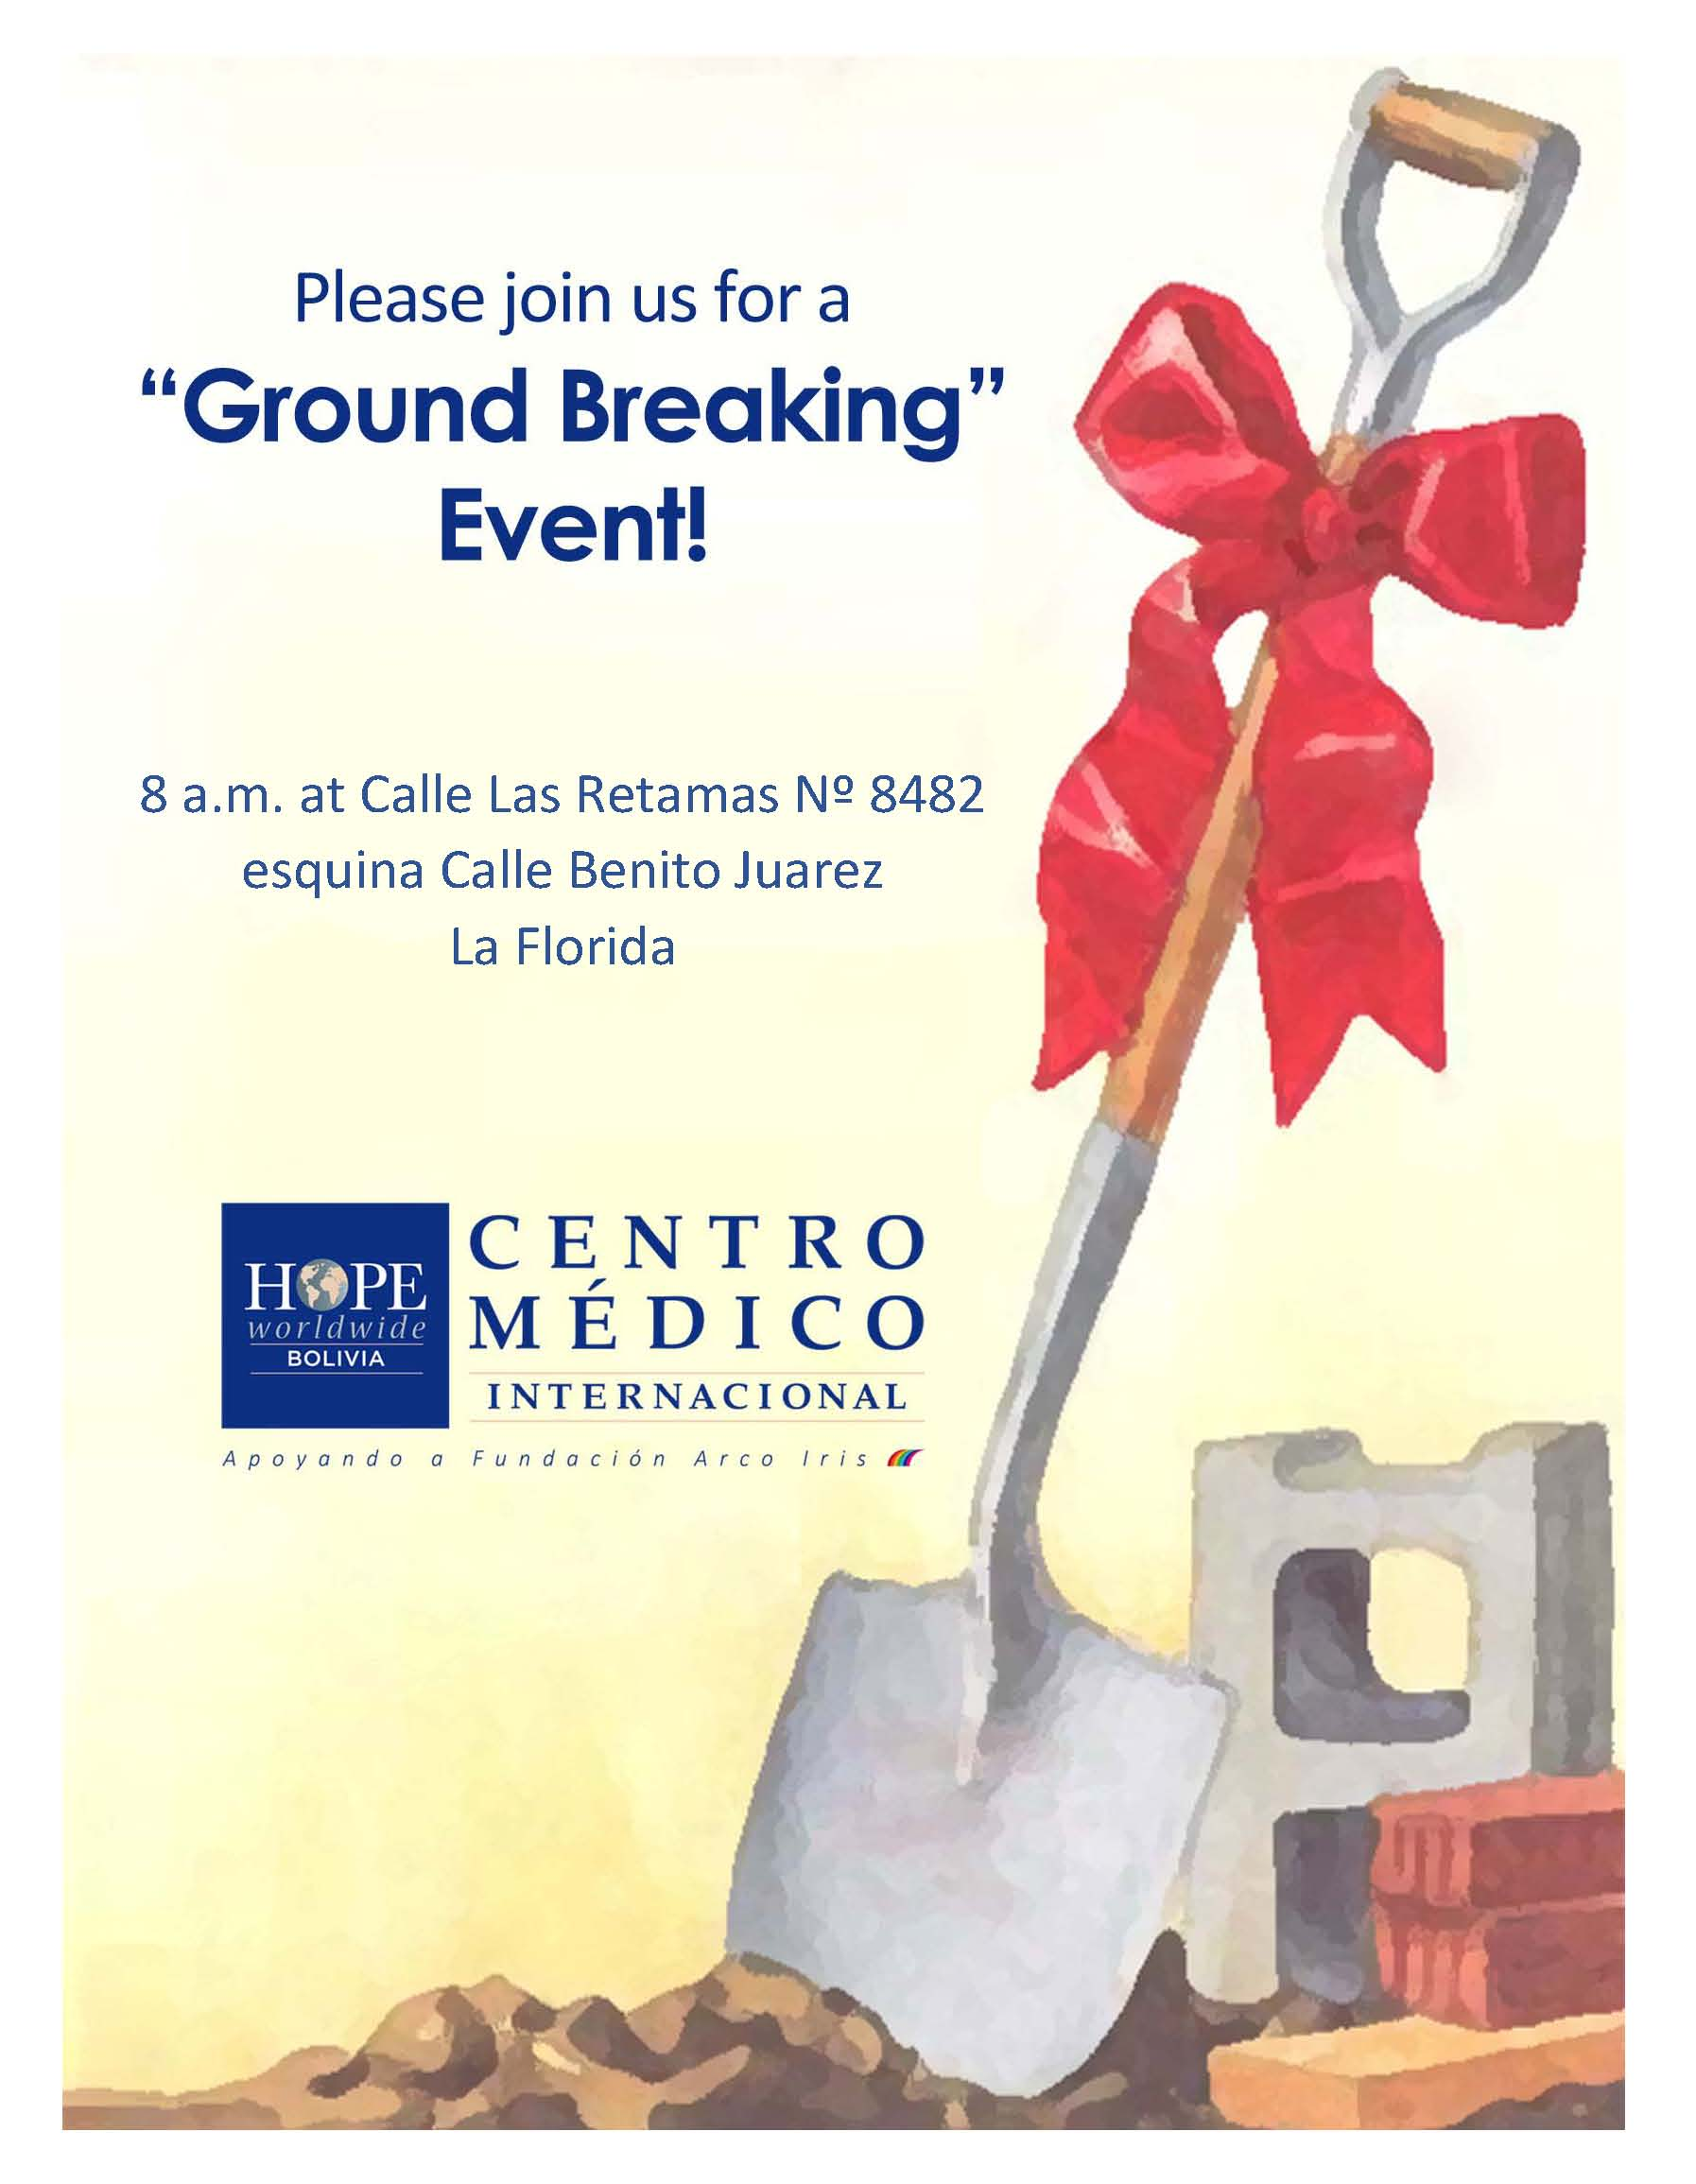 Groundbreaking Hope Centro Medico International Clinic La Paz